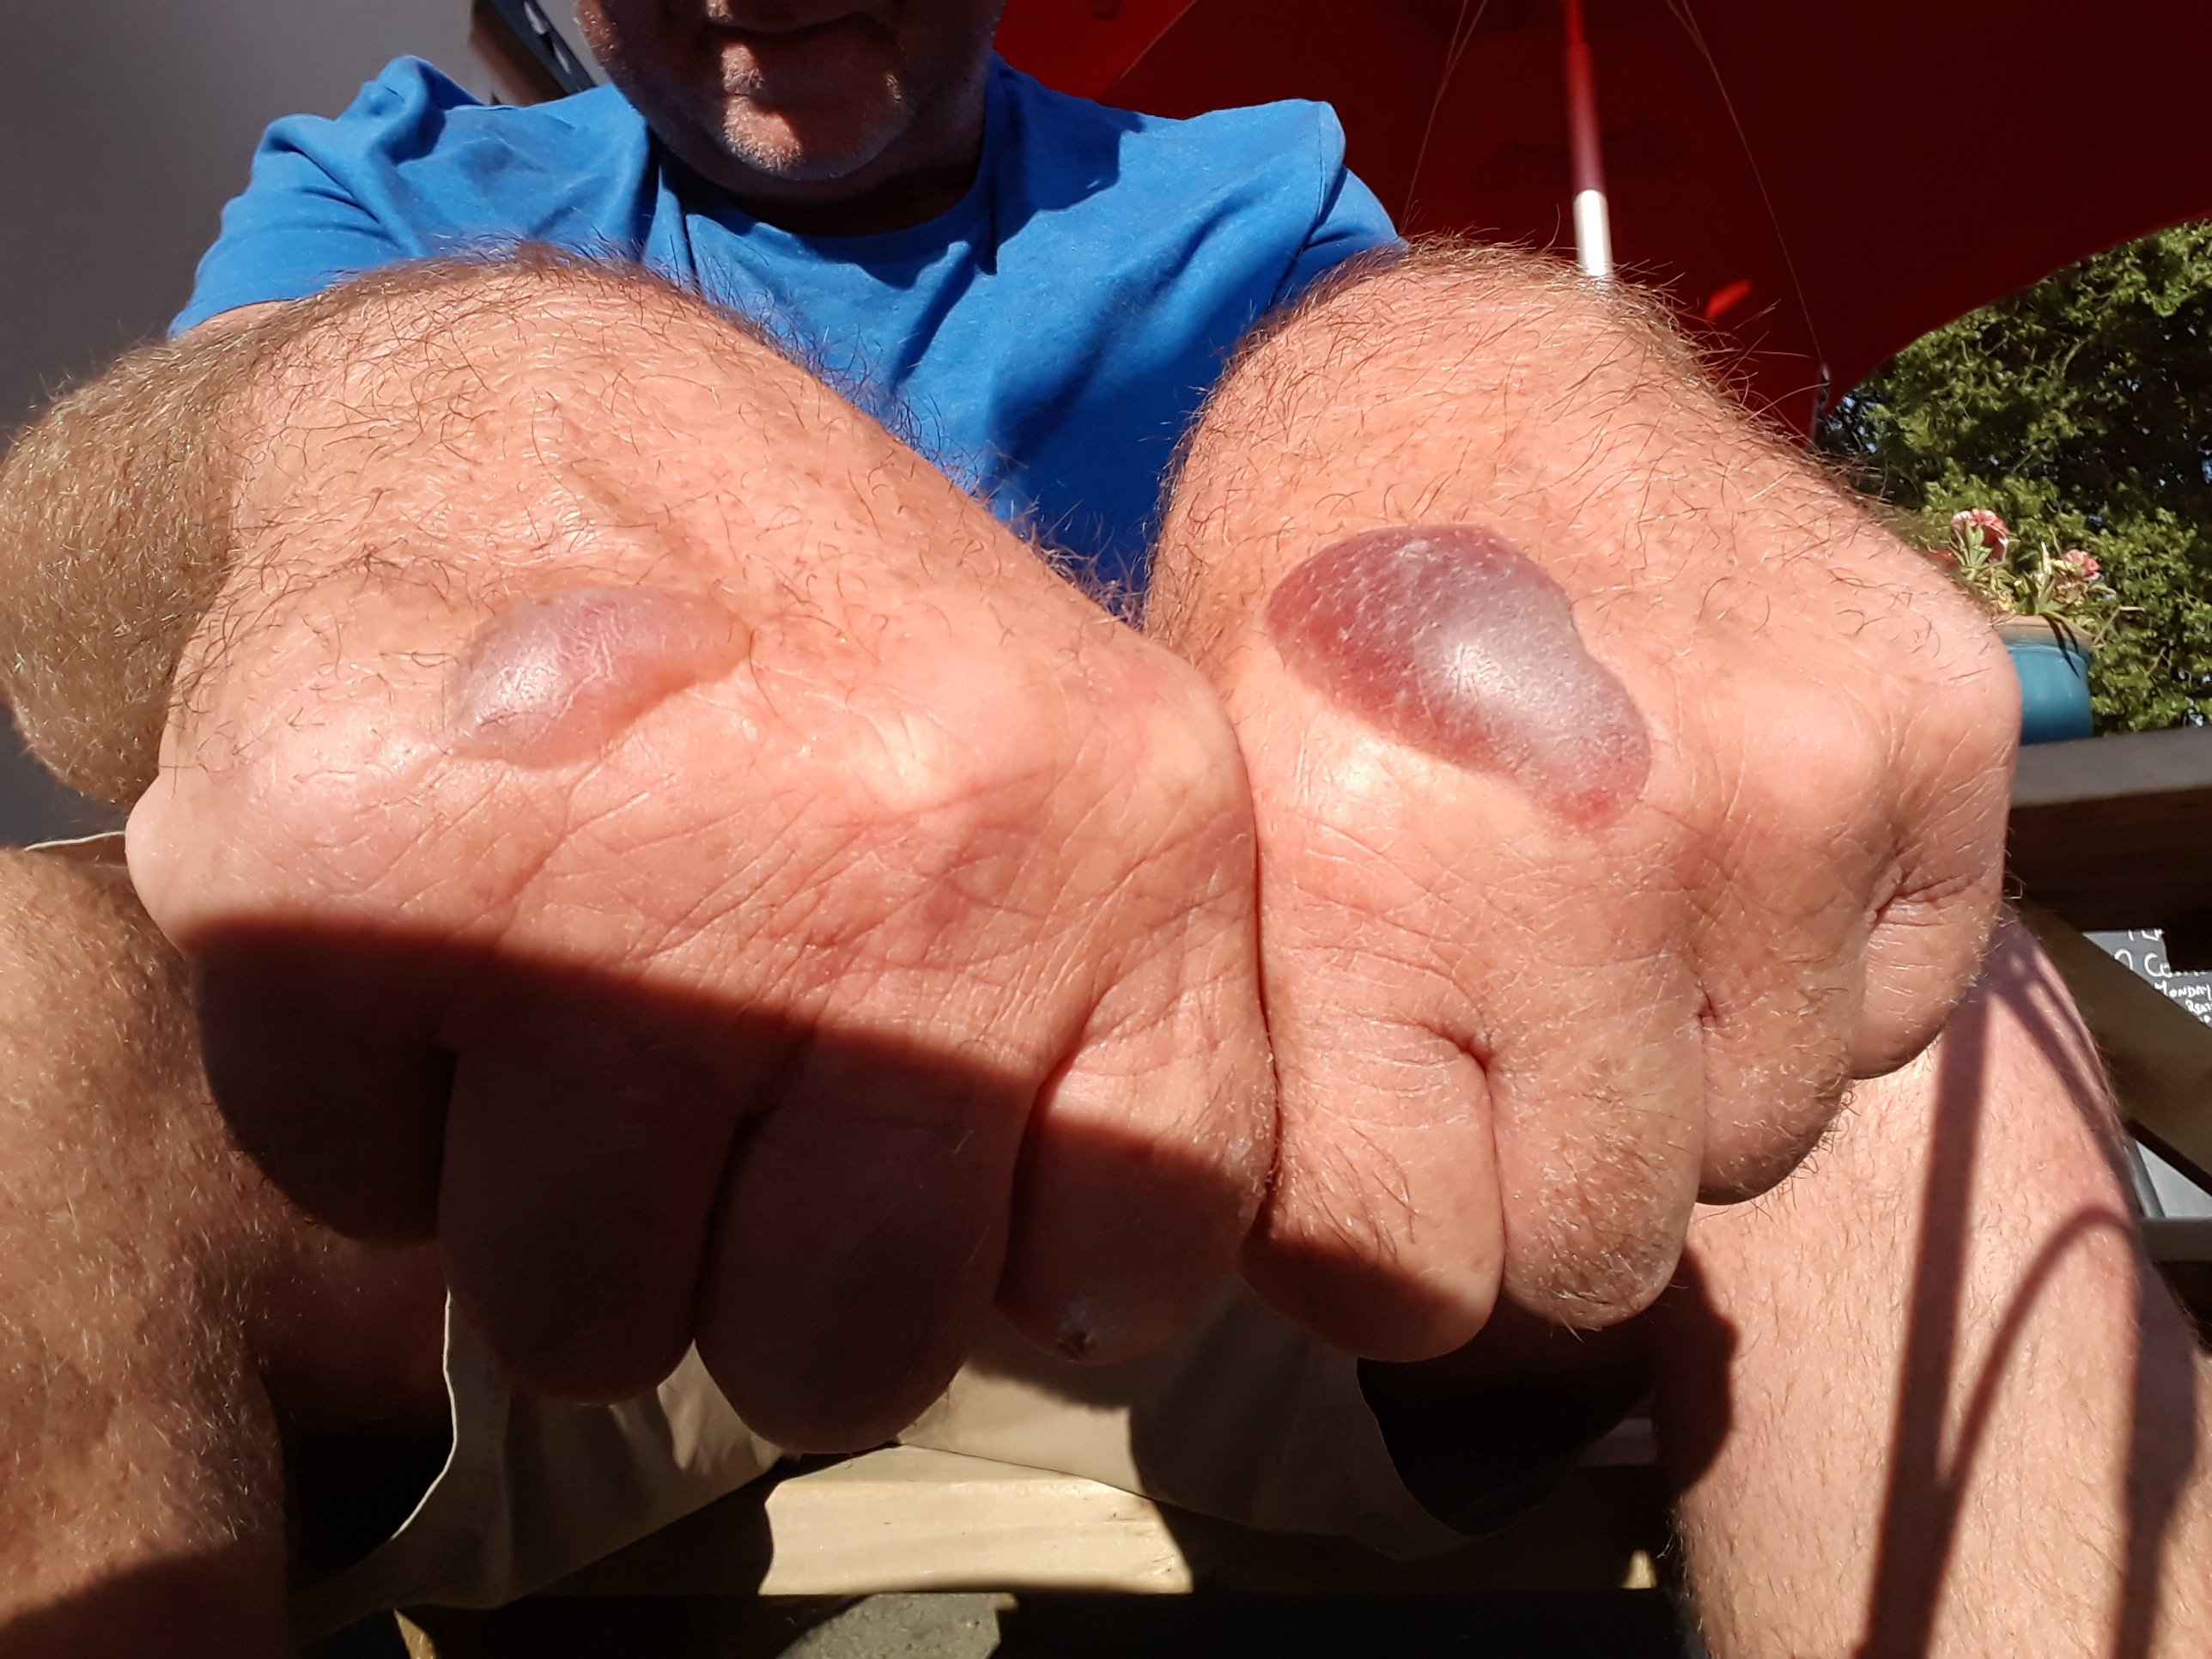 Big blisters on the back of hands